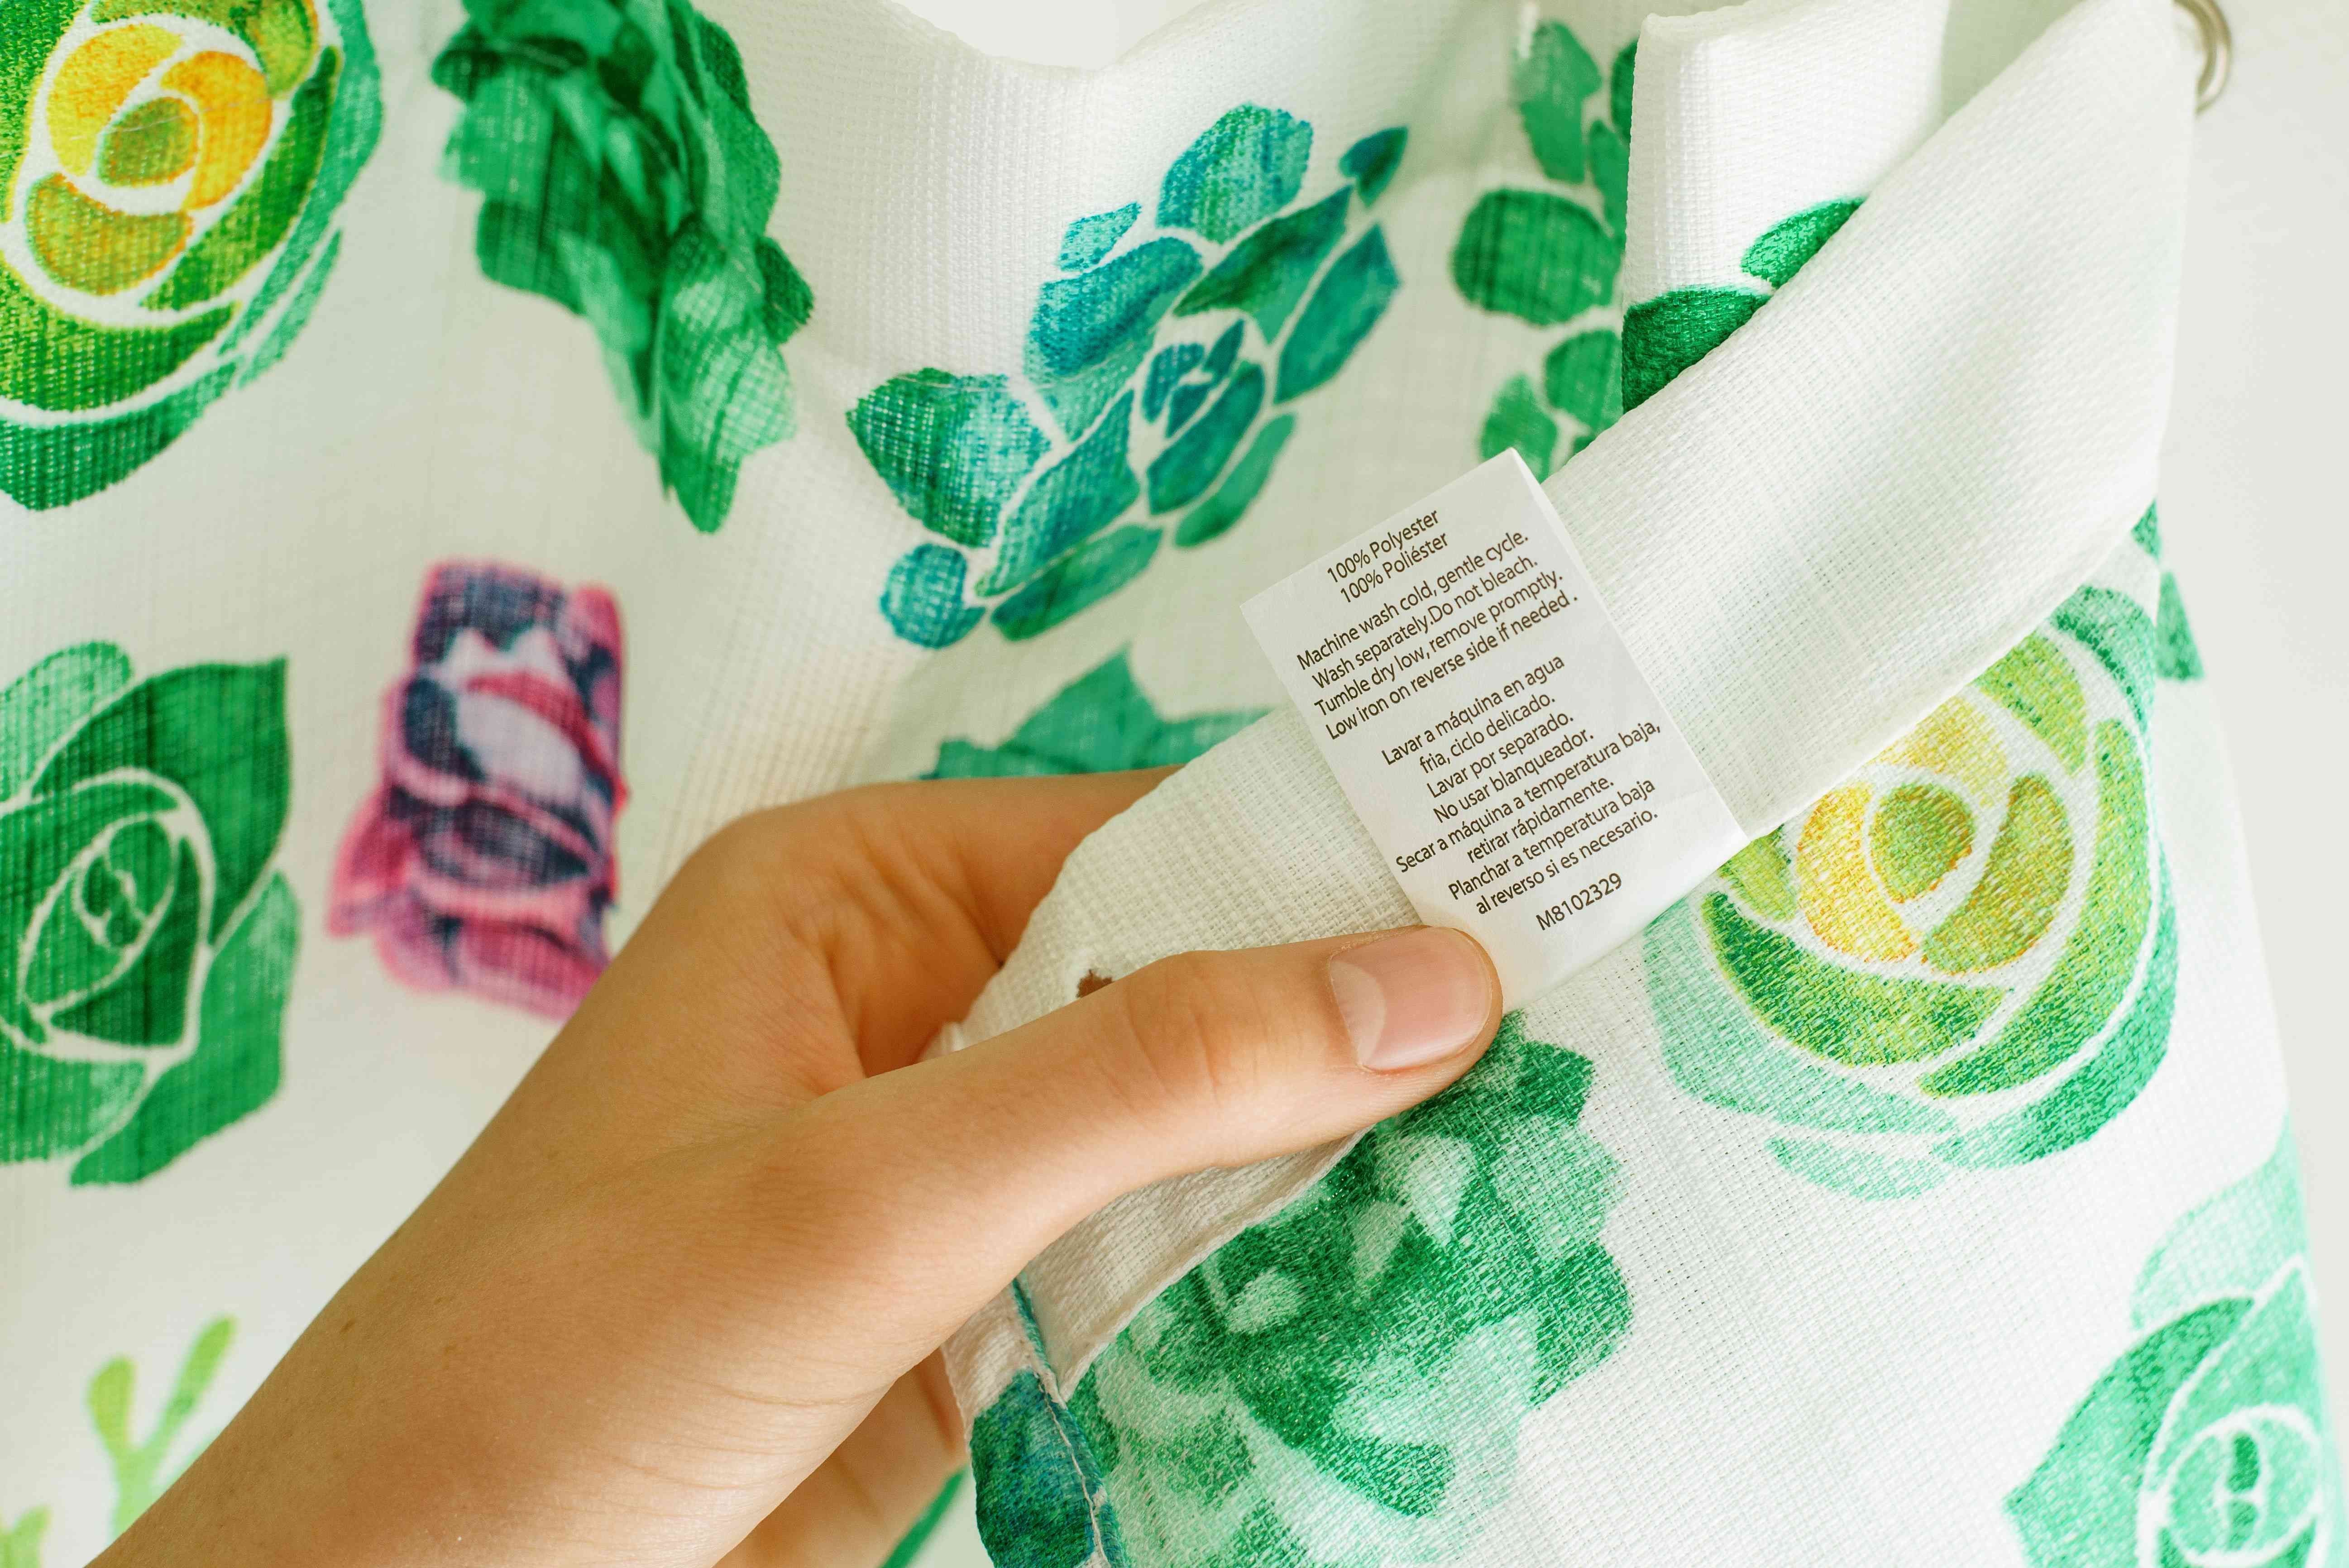 Care label held up by hand on green and white shower curtain